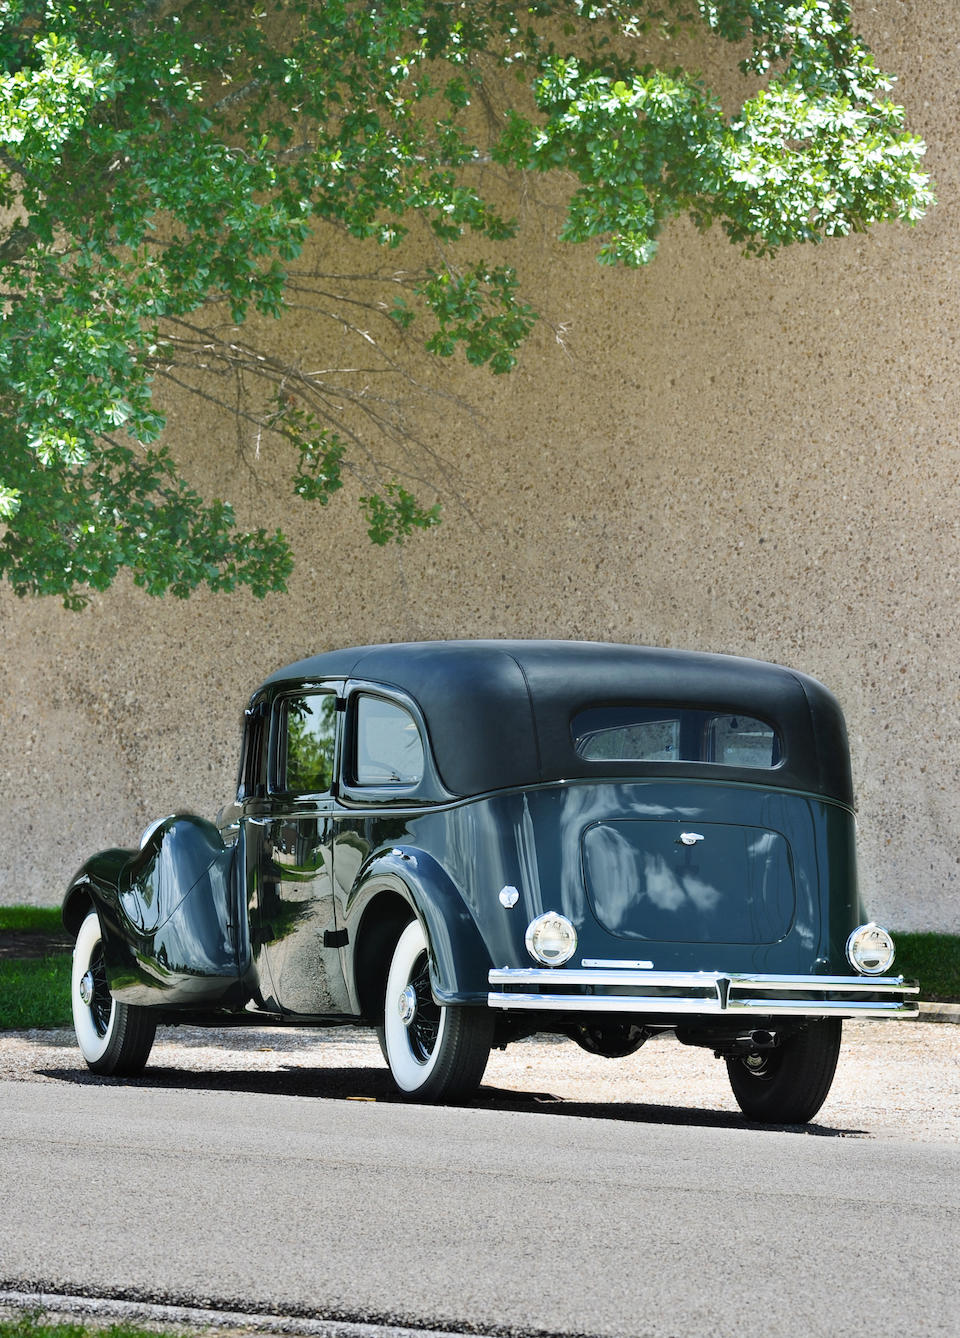 """Formerly the property of Reverend Major Jealous """"Father"""" Divine, AKA """"The Messenger"""", the penultimate Duesenberg chassis and engine and the largest example ever built,1937 Duesenberg Model J 'Throne Car' Limousine Landaulet  Chassis no. 2613 Engine no. J-587"""